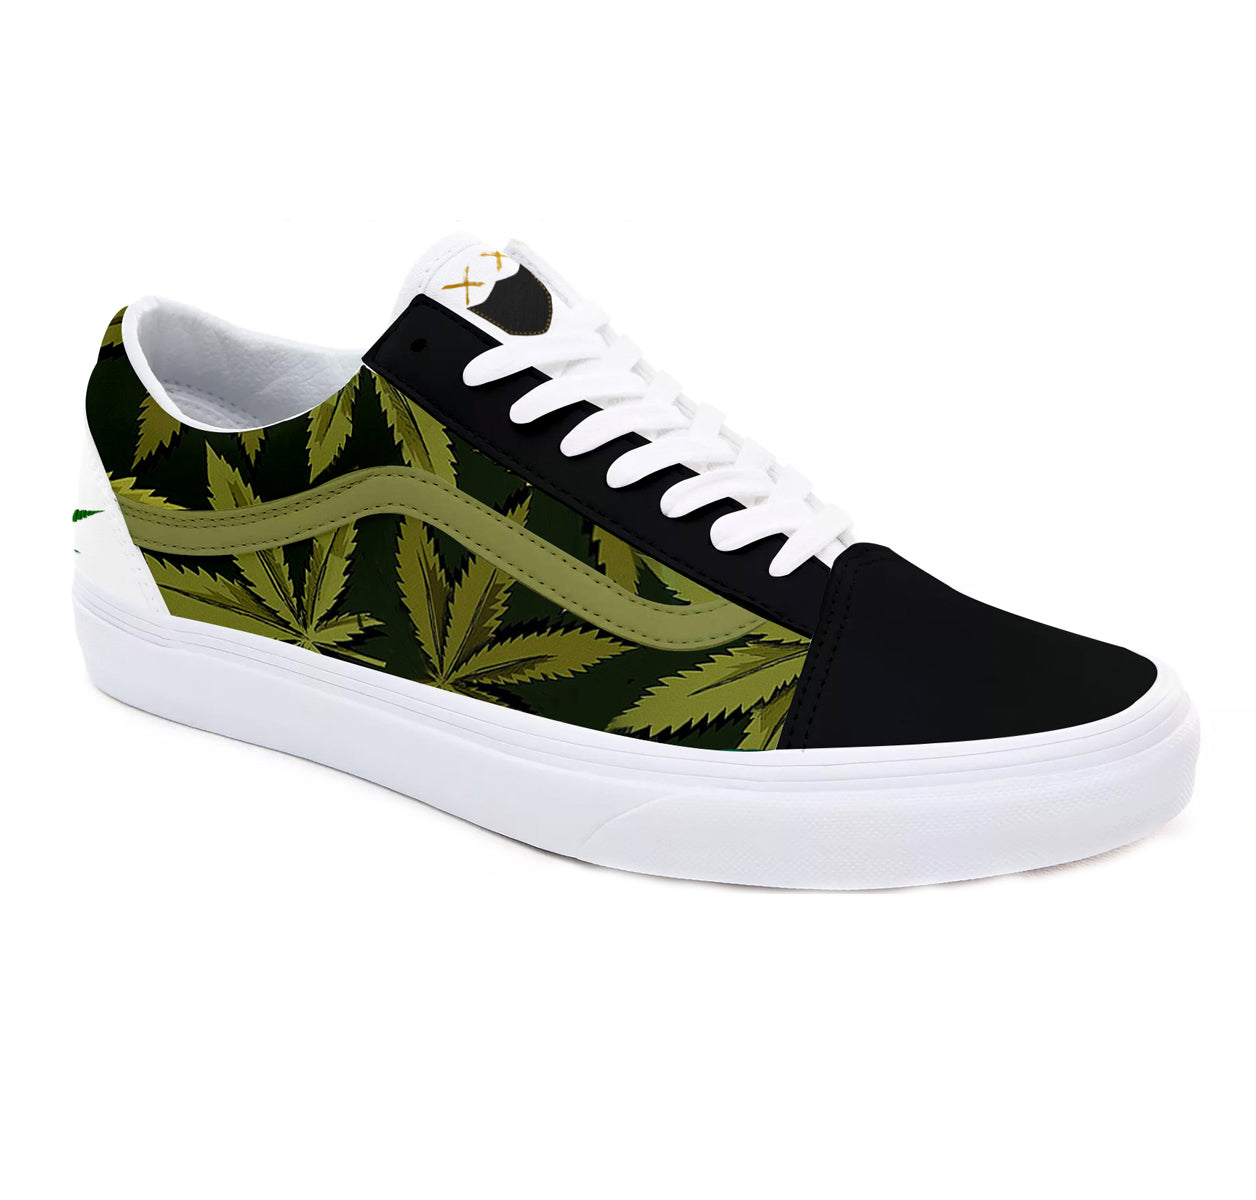 Vans Sneakers Limited Edition Online Sales, UP TO 59% OFF